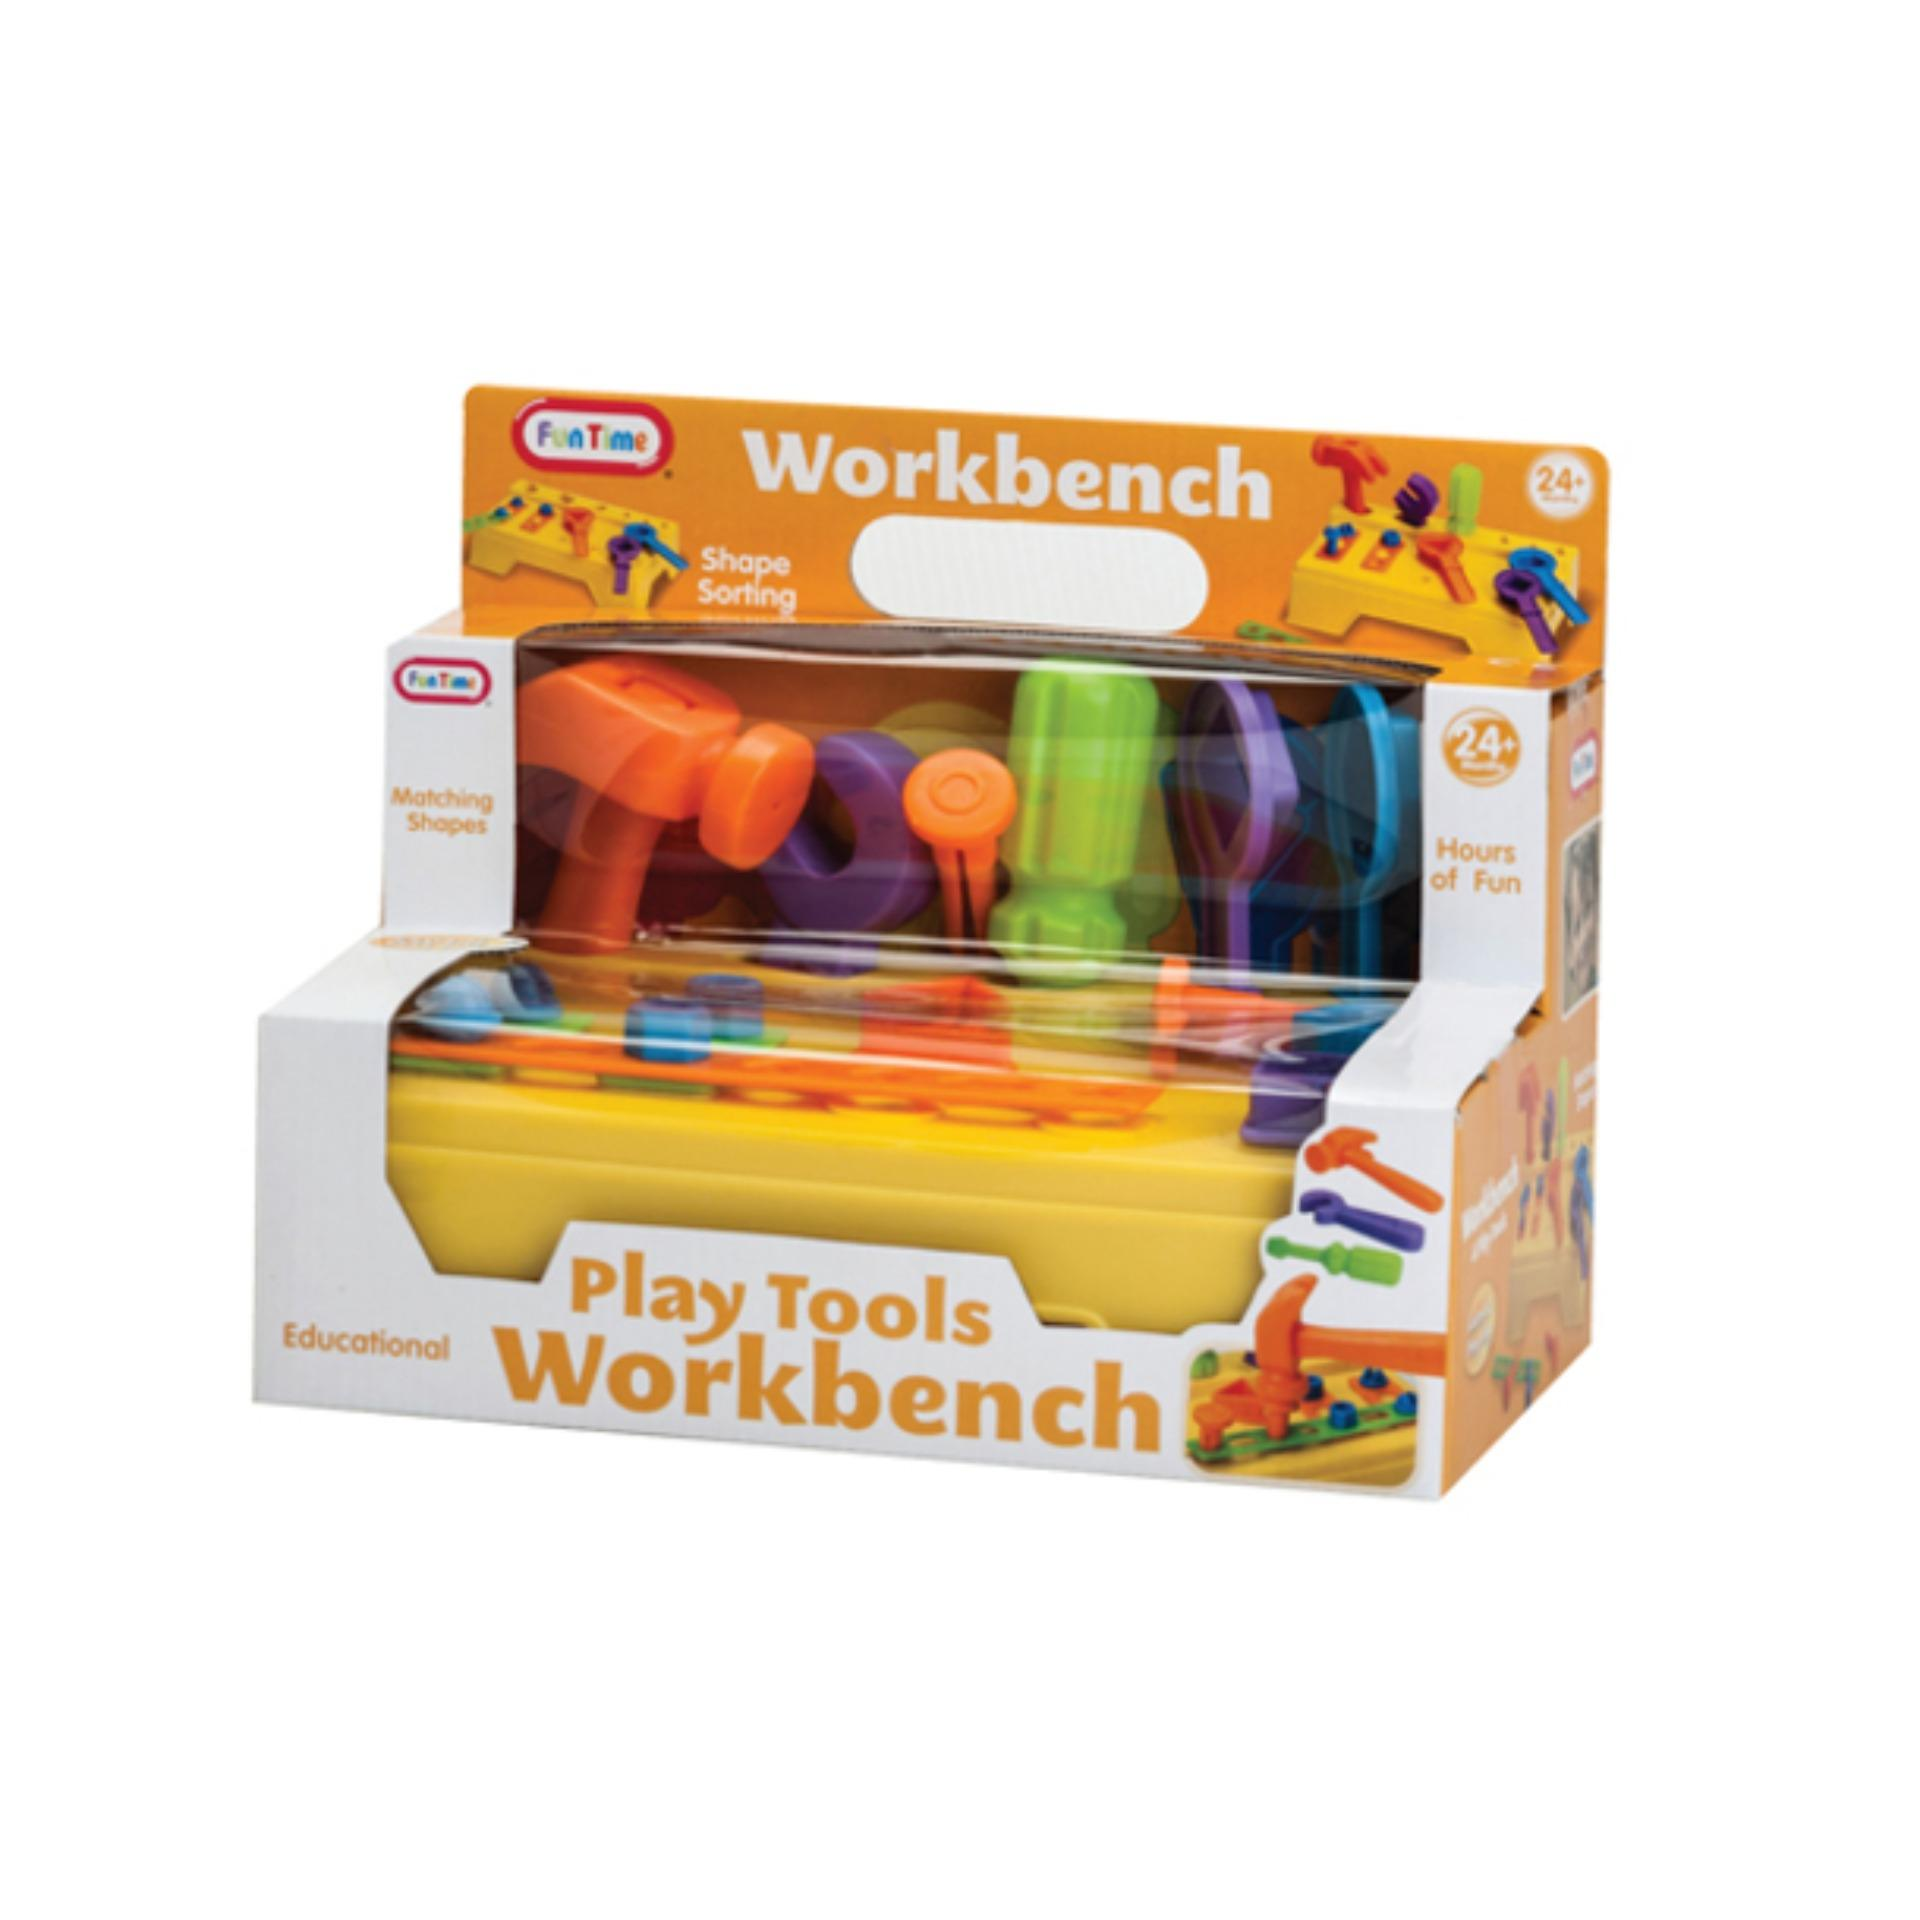 Funtime Workbench Play Tools Baby Toys By Lian Thye & Co Pte Ltd.